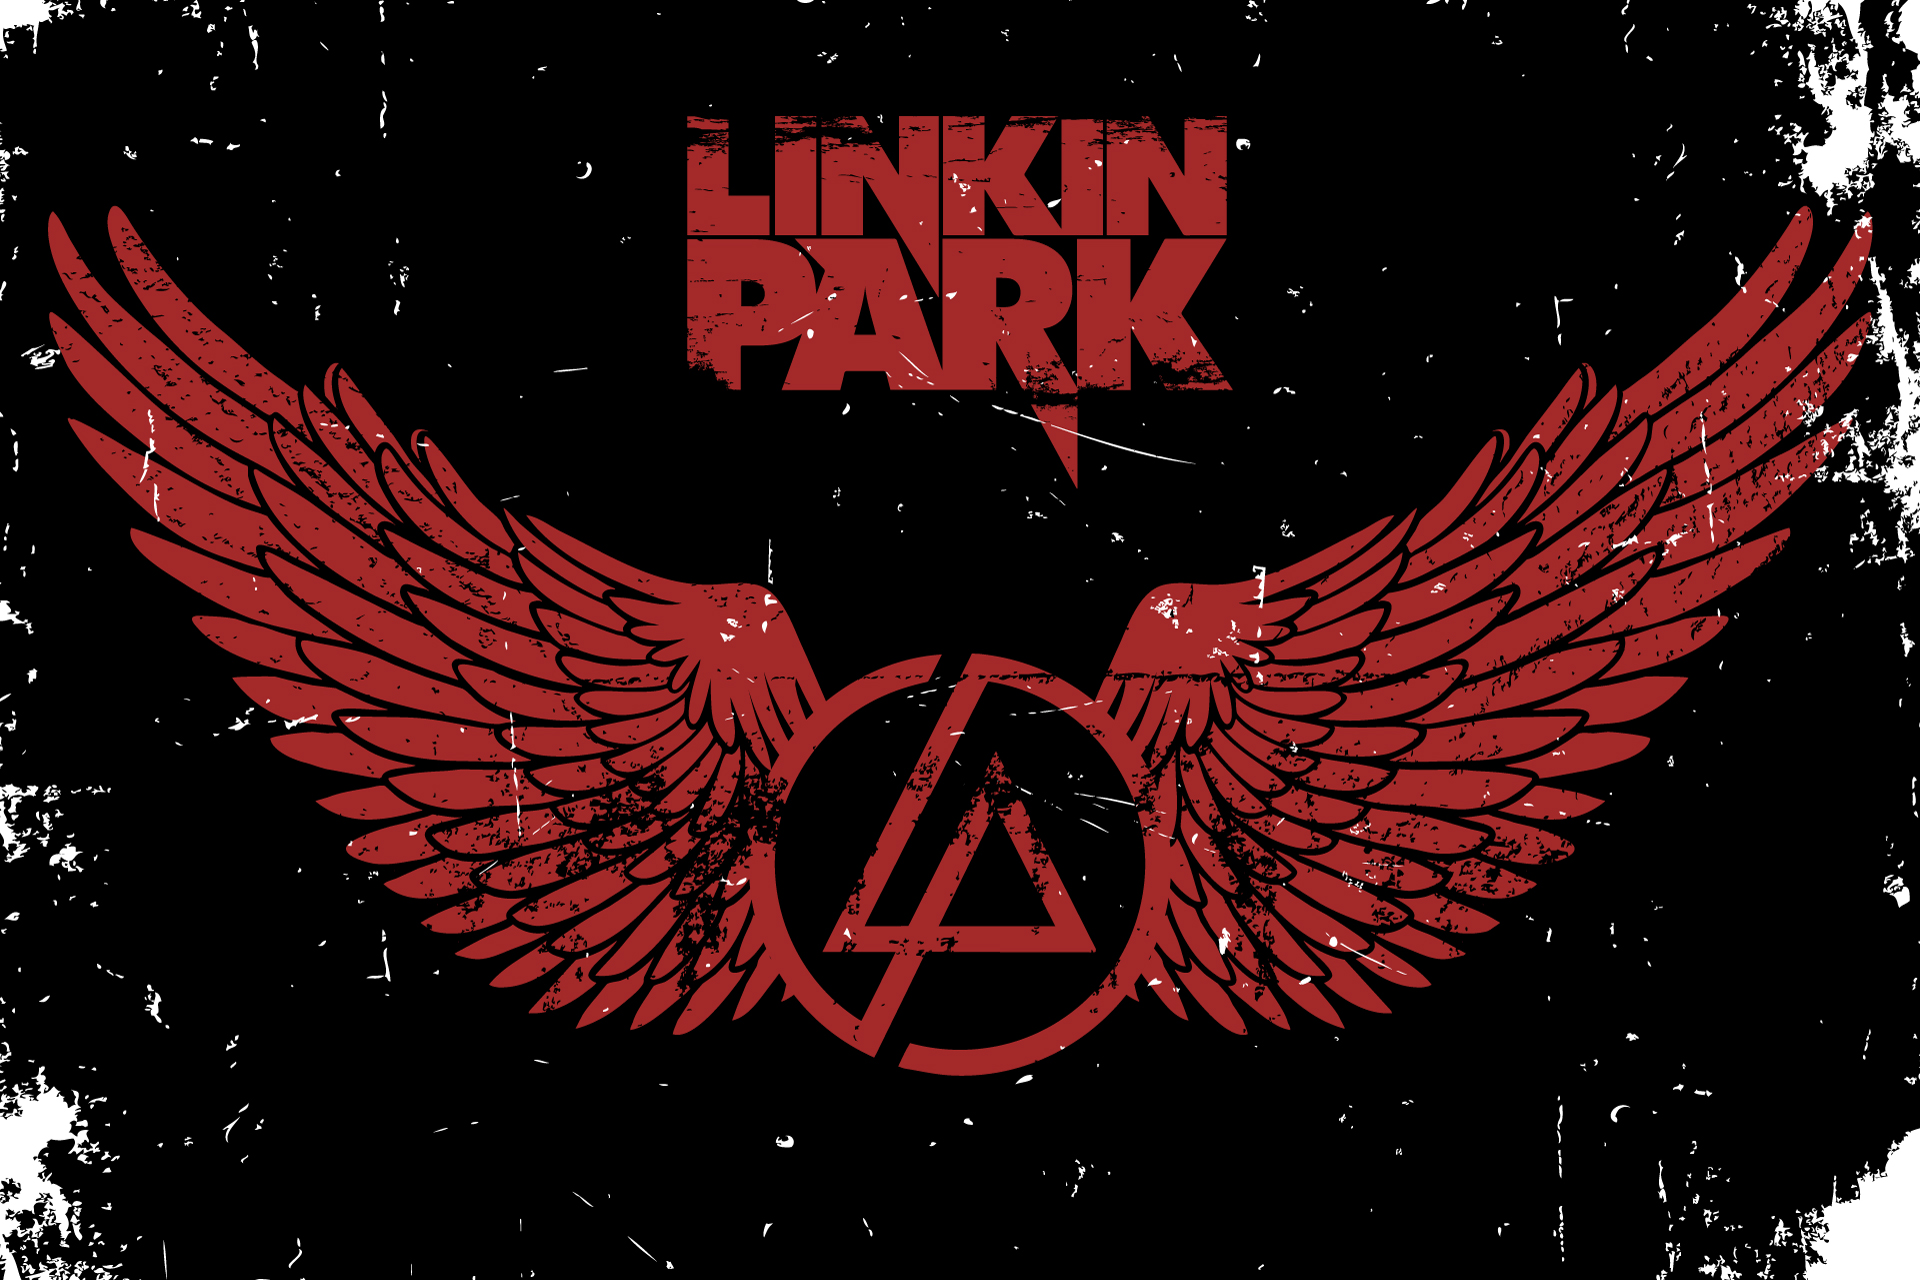 linkin park poster by polygonbronson on